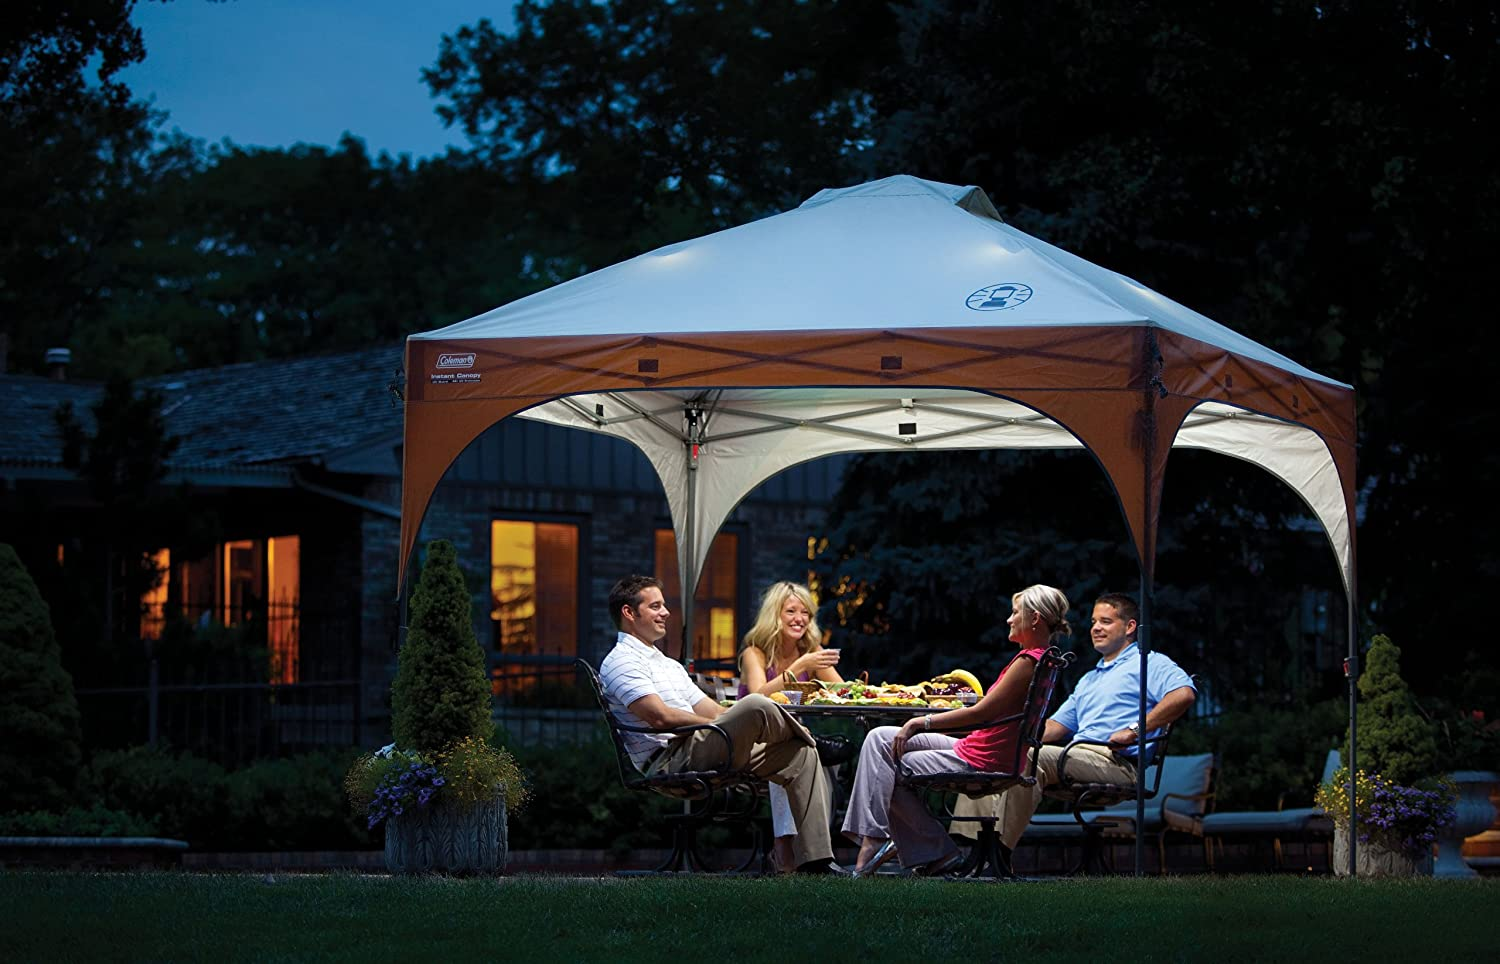 amazon com coleman instant canopy tent with led lighting system 10